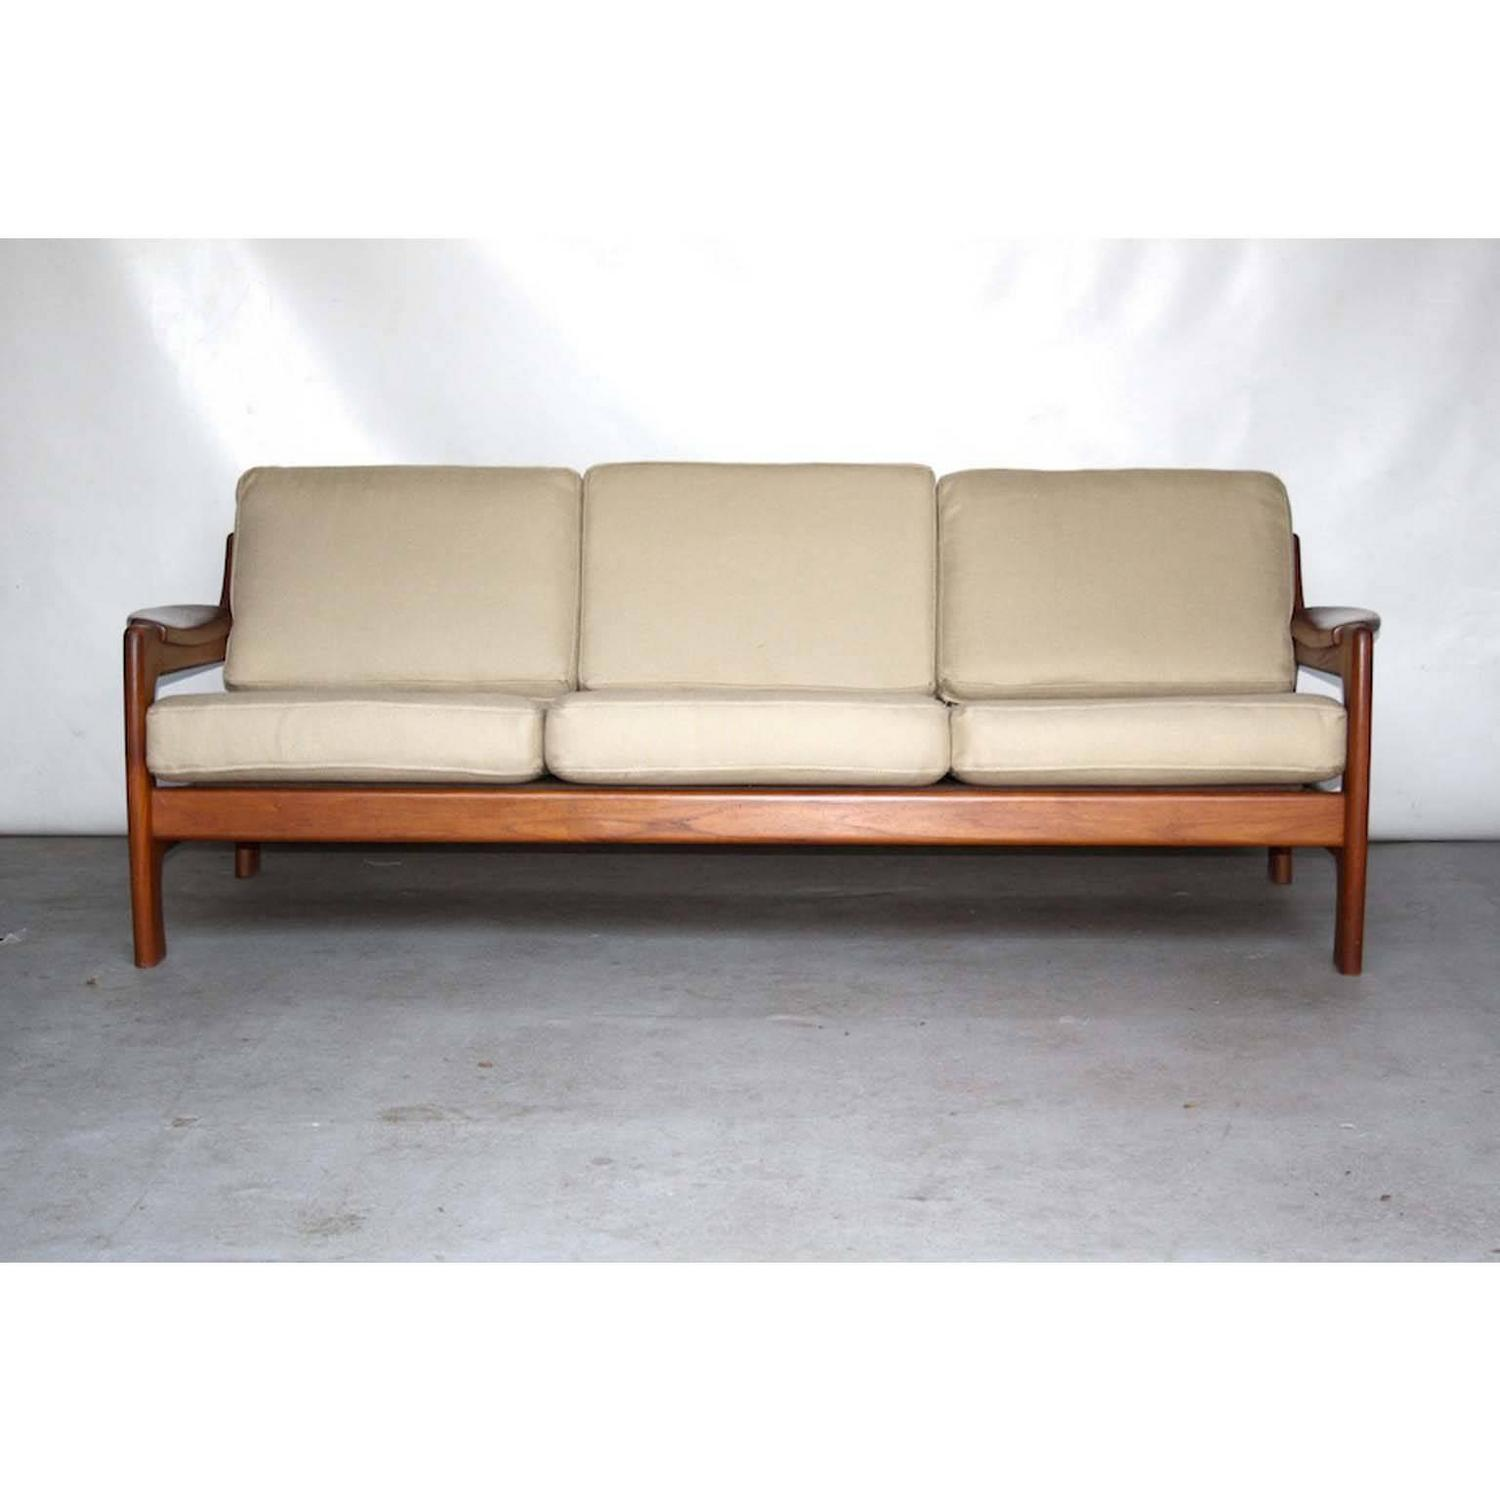 teak sofa attributed to arne wahl iversen for komfort denmark 1960s for sale at 1stdibs. Black Bedroom Furniture Sets. Home Design Ideas